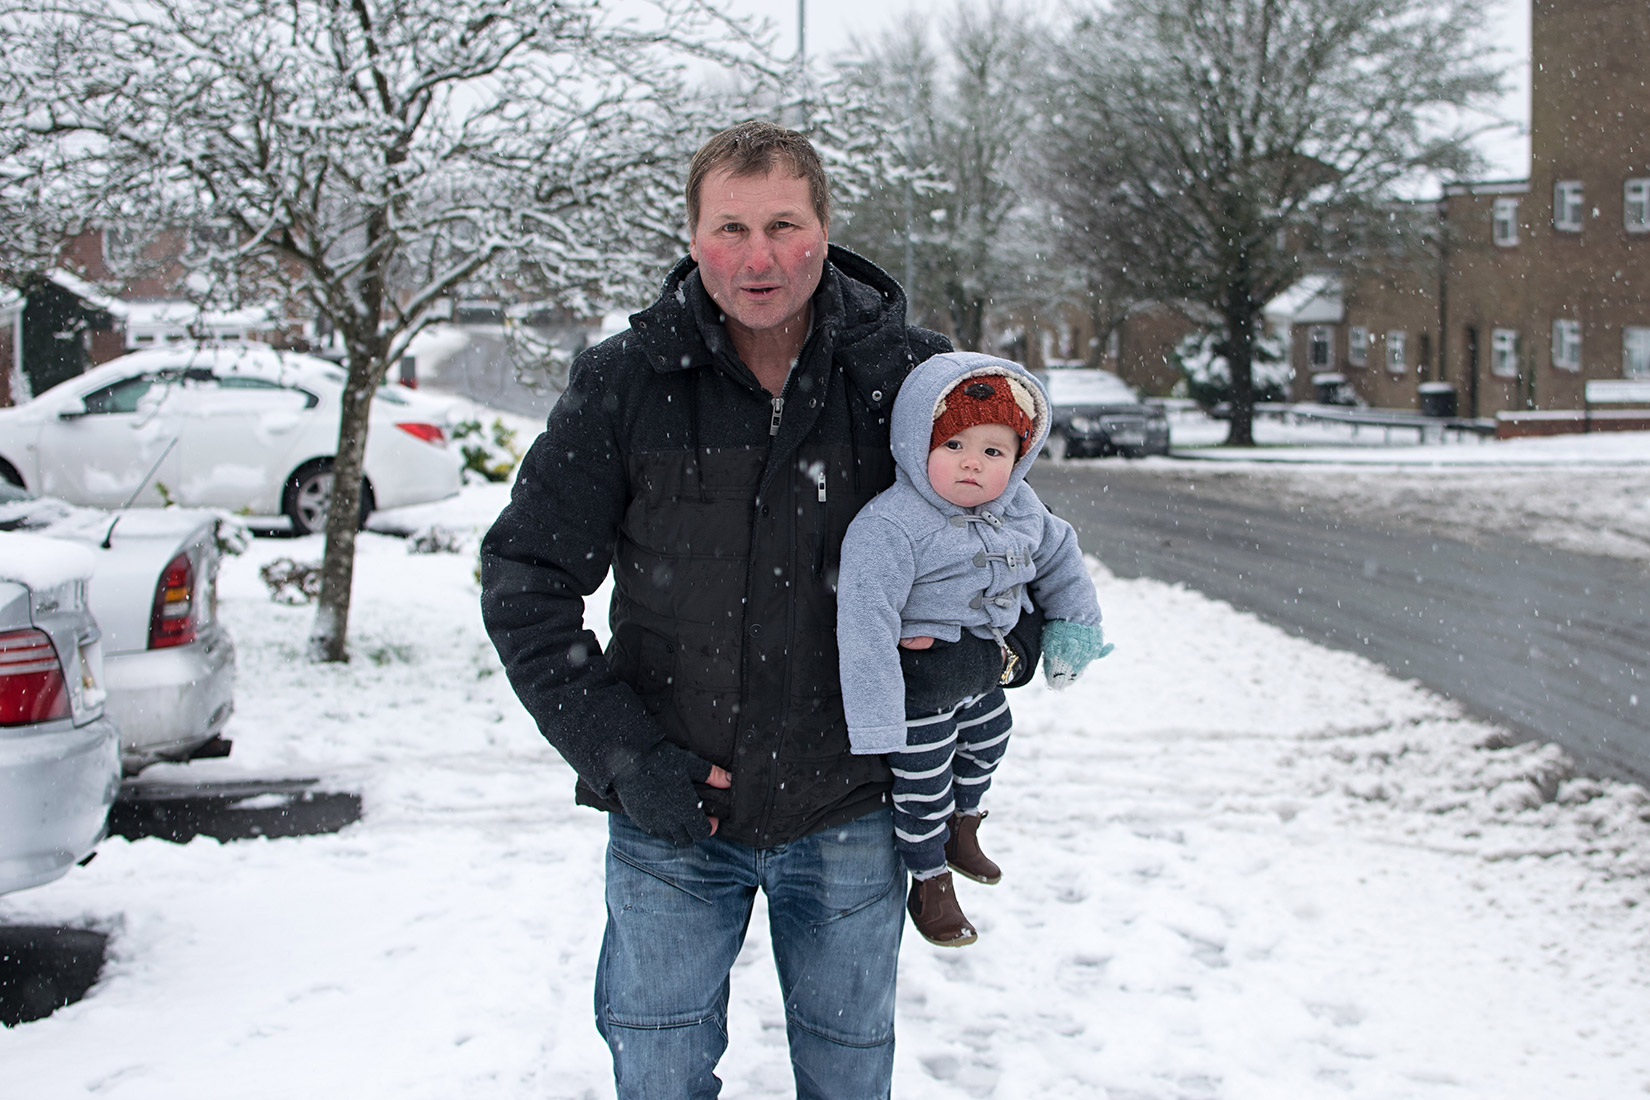 Grandad walking along in the first snowfall of the year holding young toddler grandson